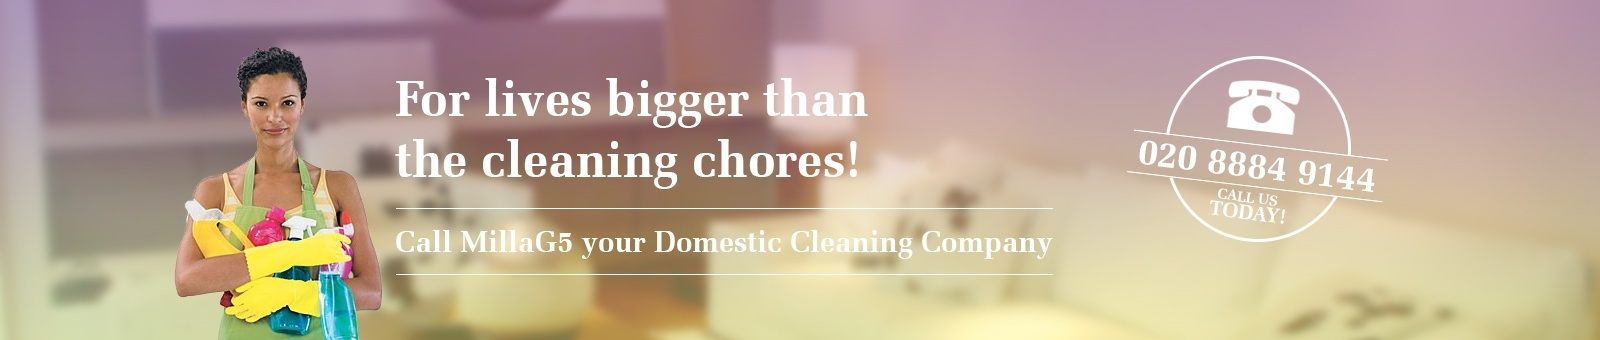 millag5-domestic-cleaning-company